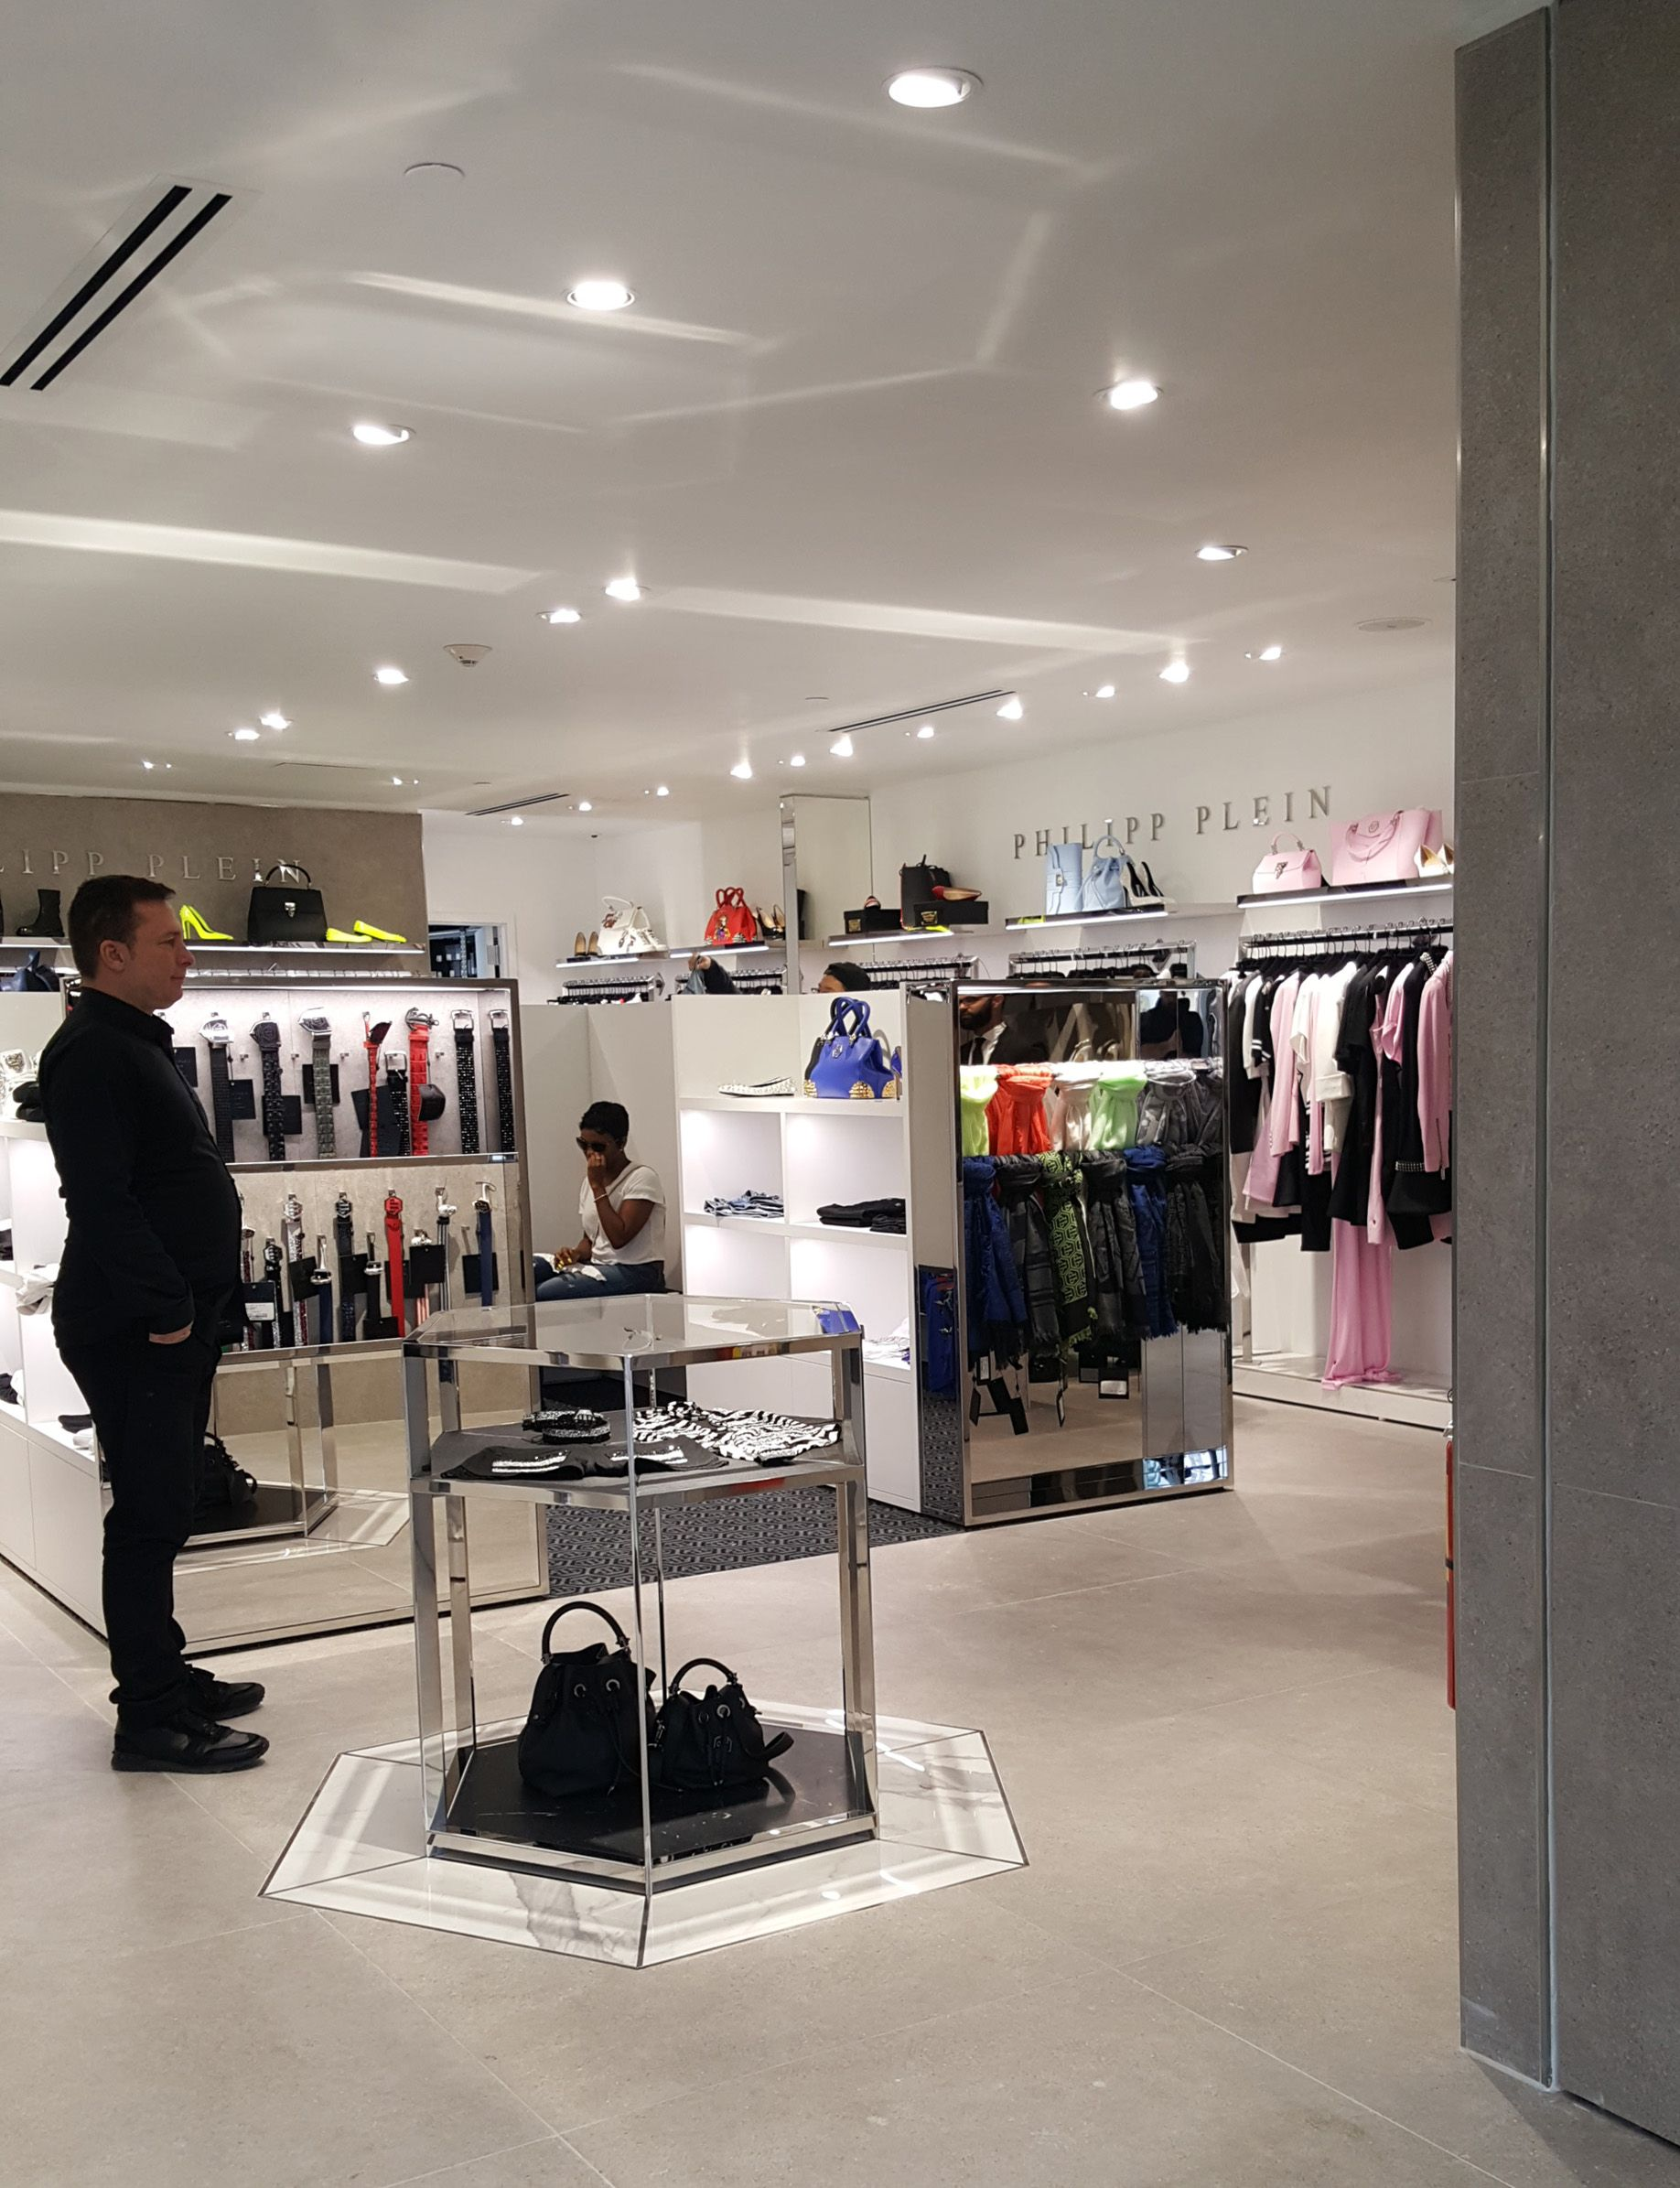 Philipp Plein Store at Woodbury Common outlet in New York